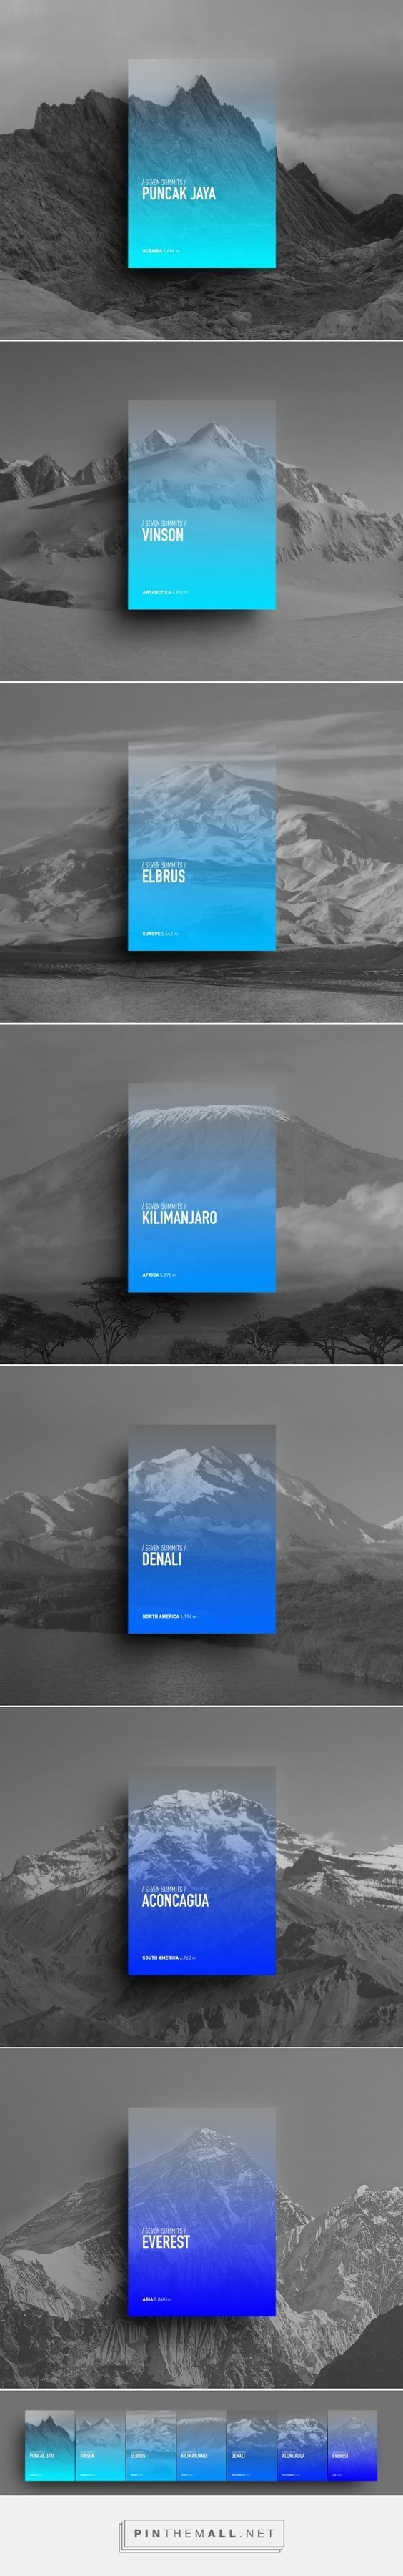 Seven Summits Posters Designed by Riccardo Vicente…